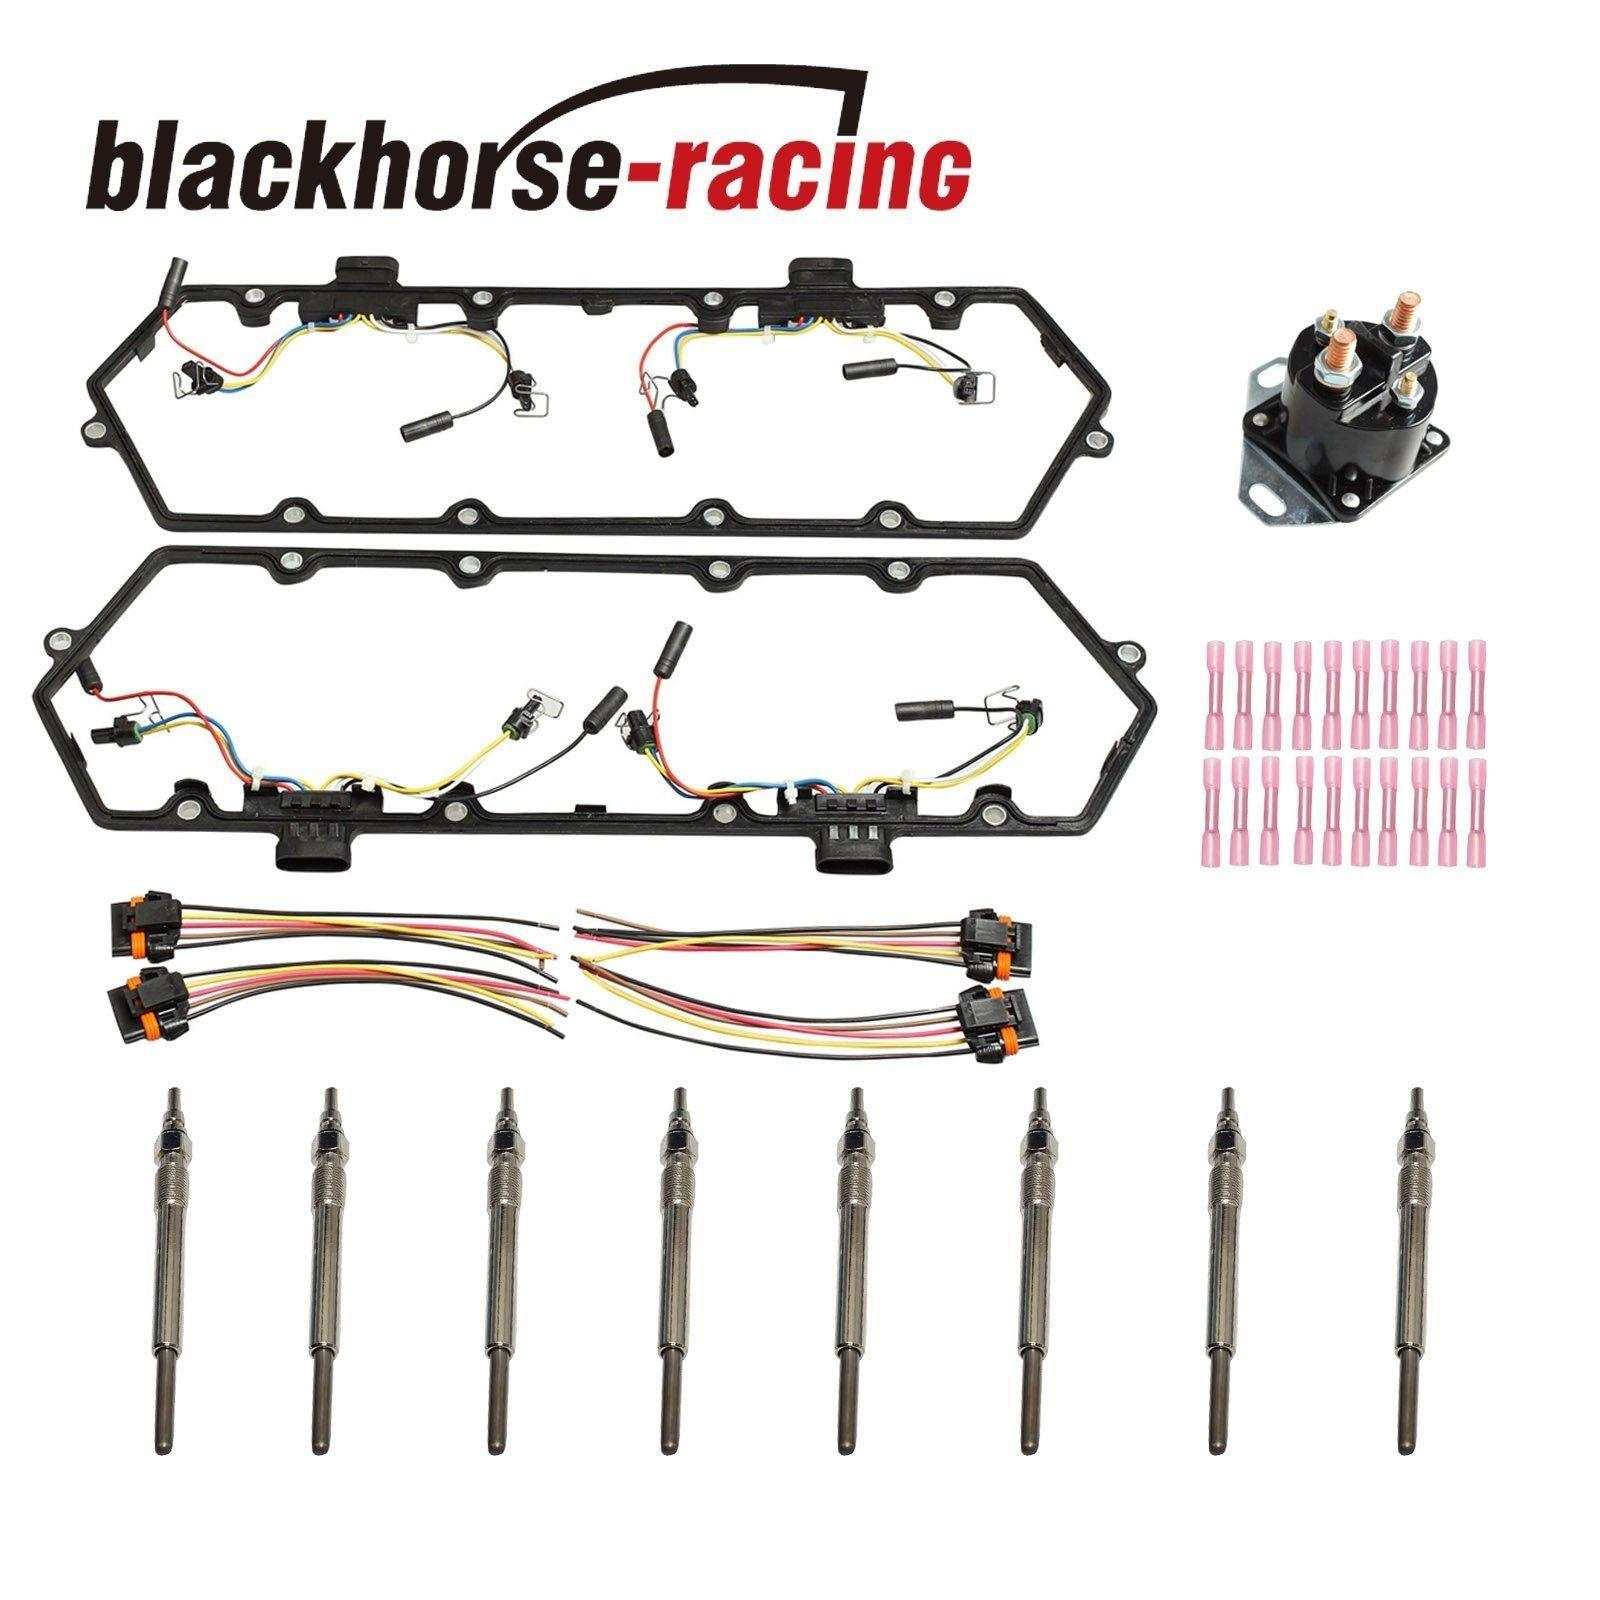 New Glow Plugs & Relay+Valve Cover Gaskets Harnesses For 7.3L 94-97 Powerstroke